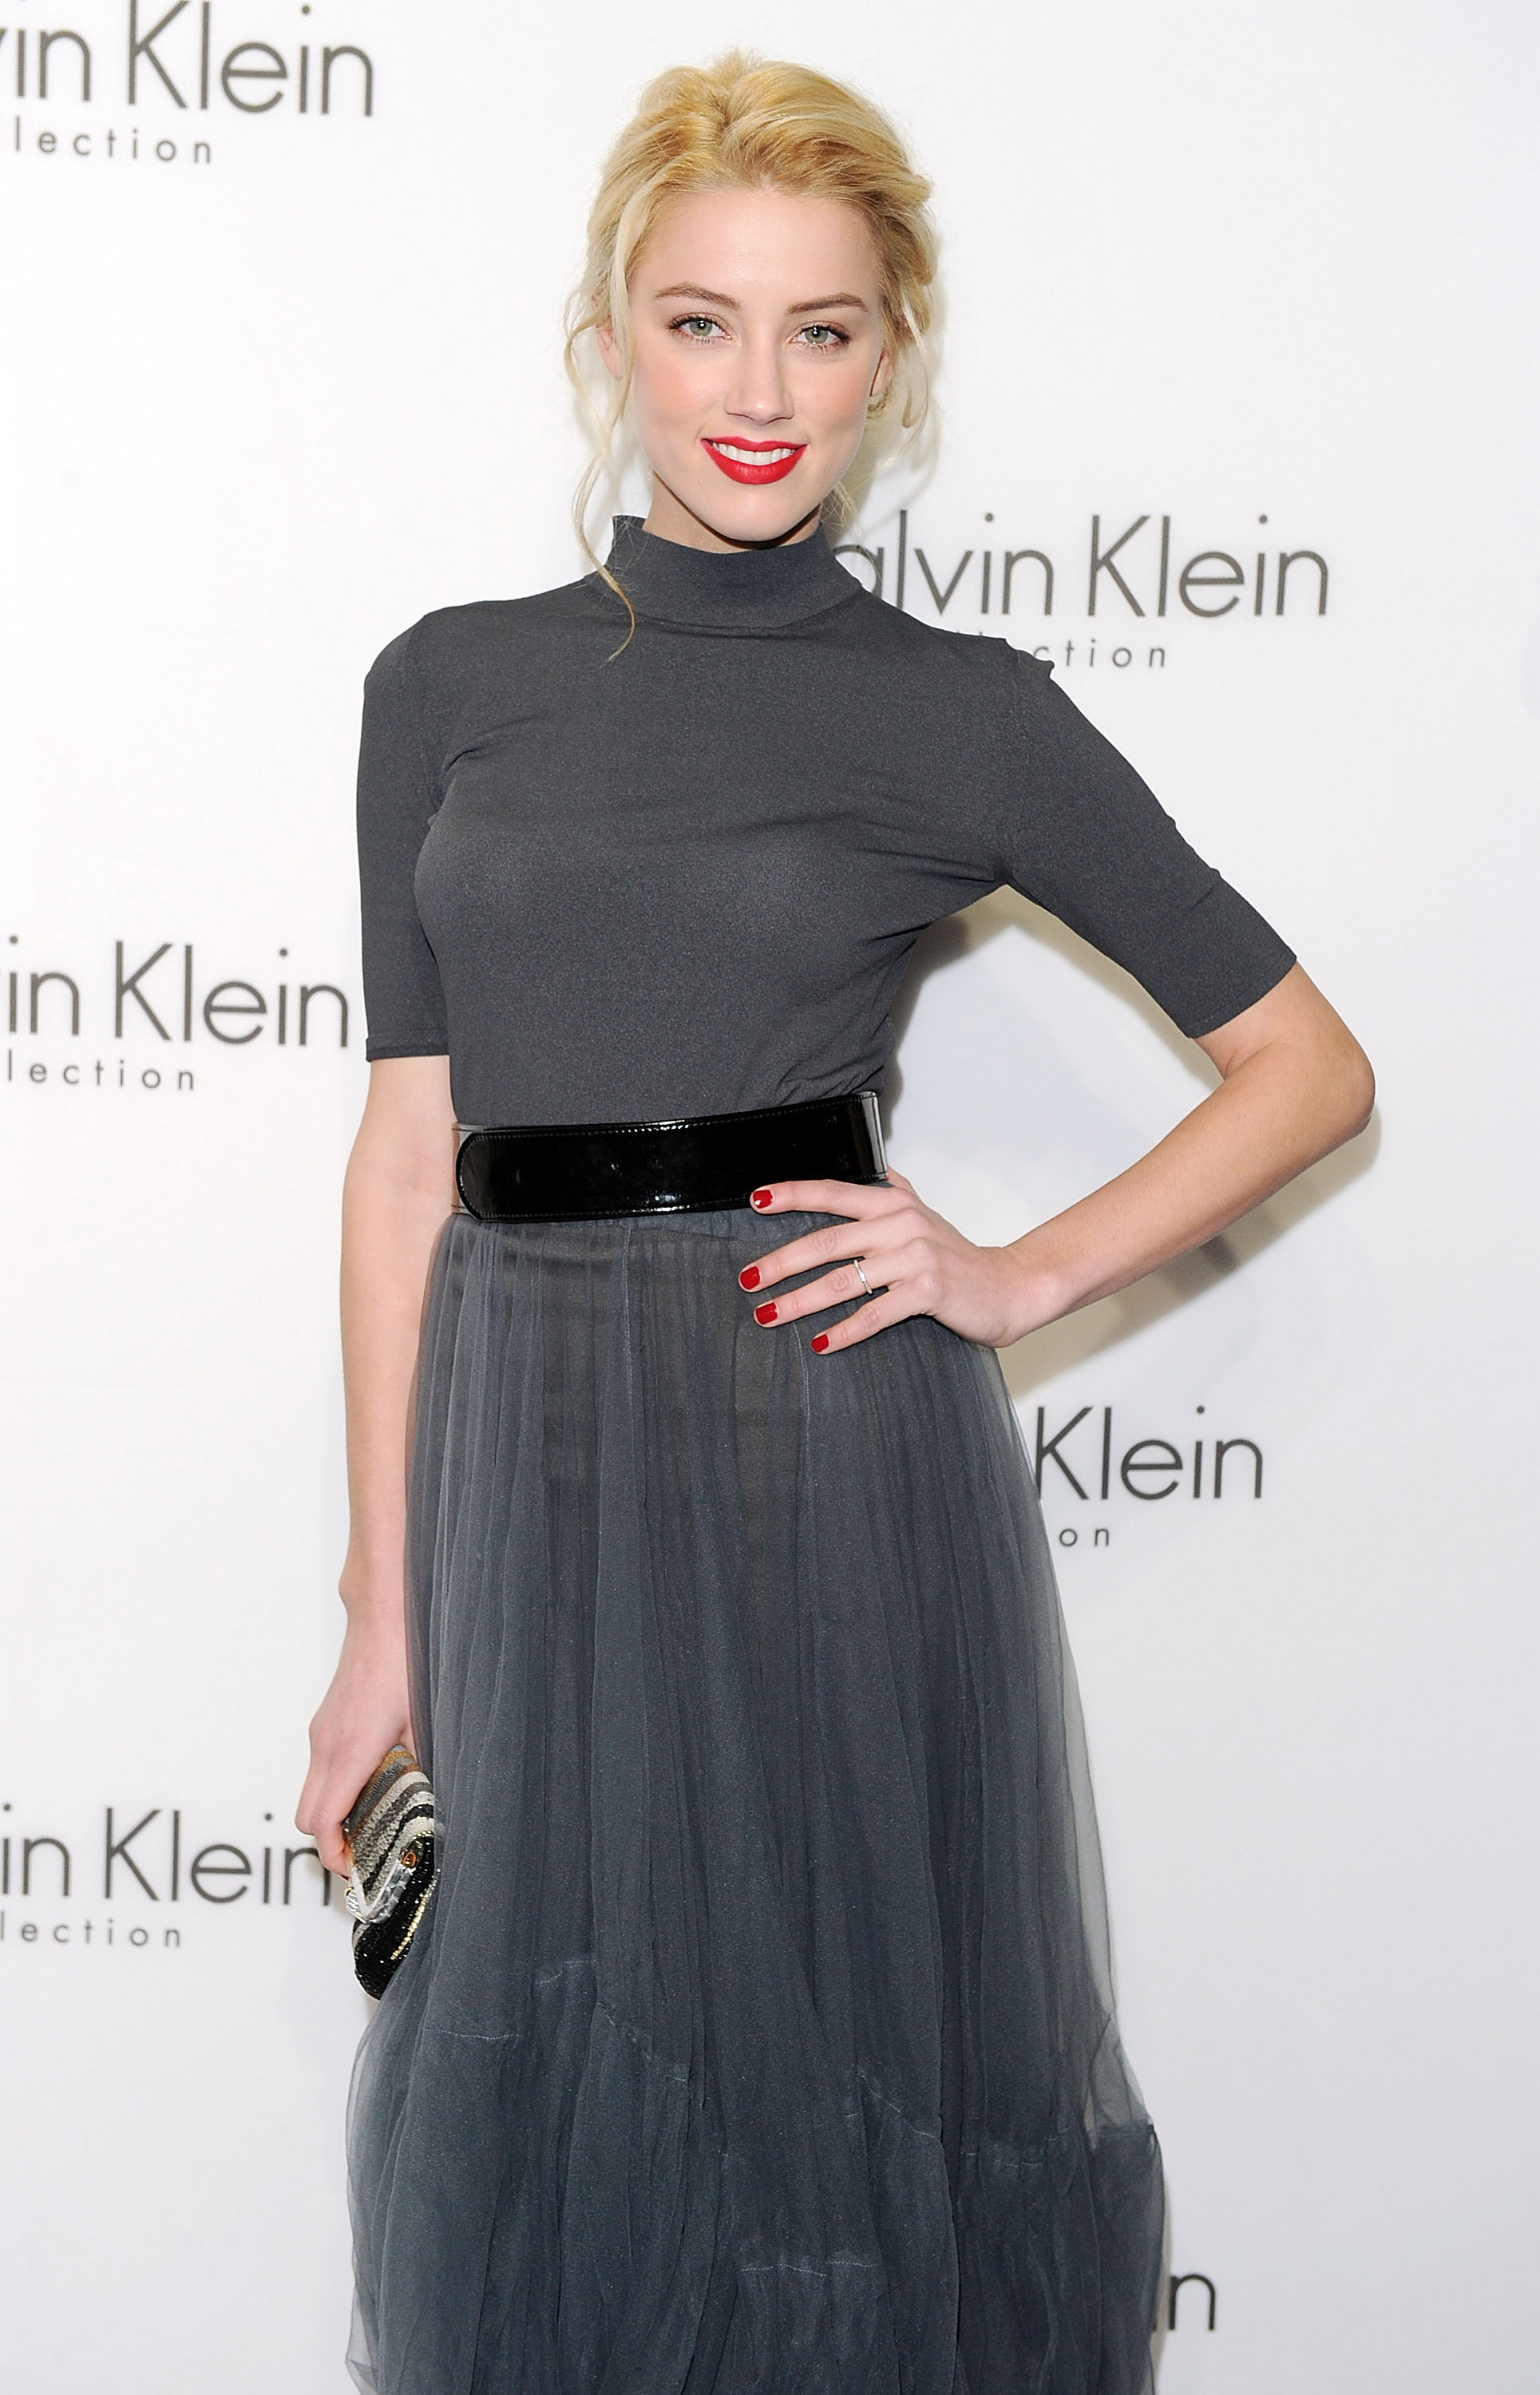 87206_amber_heard_calvin_klein_after_party-2_122_15lo.jpg